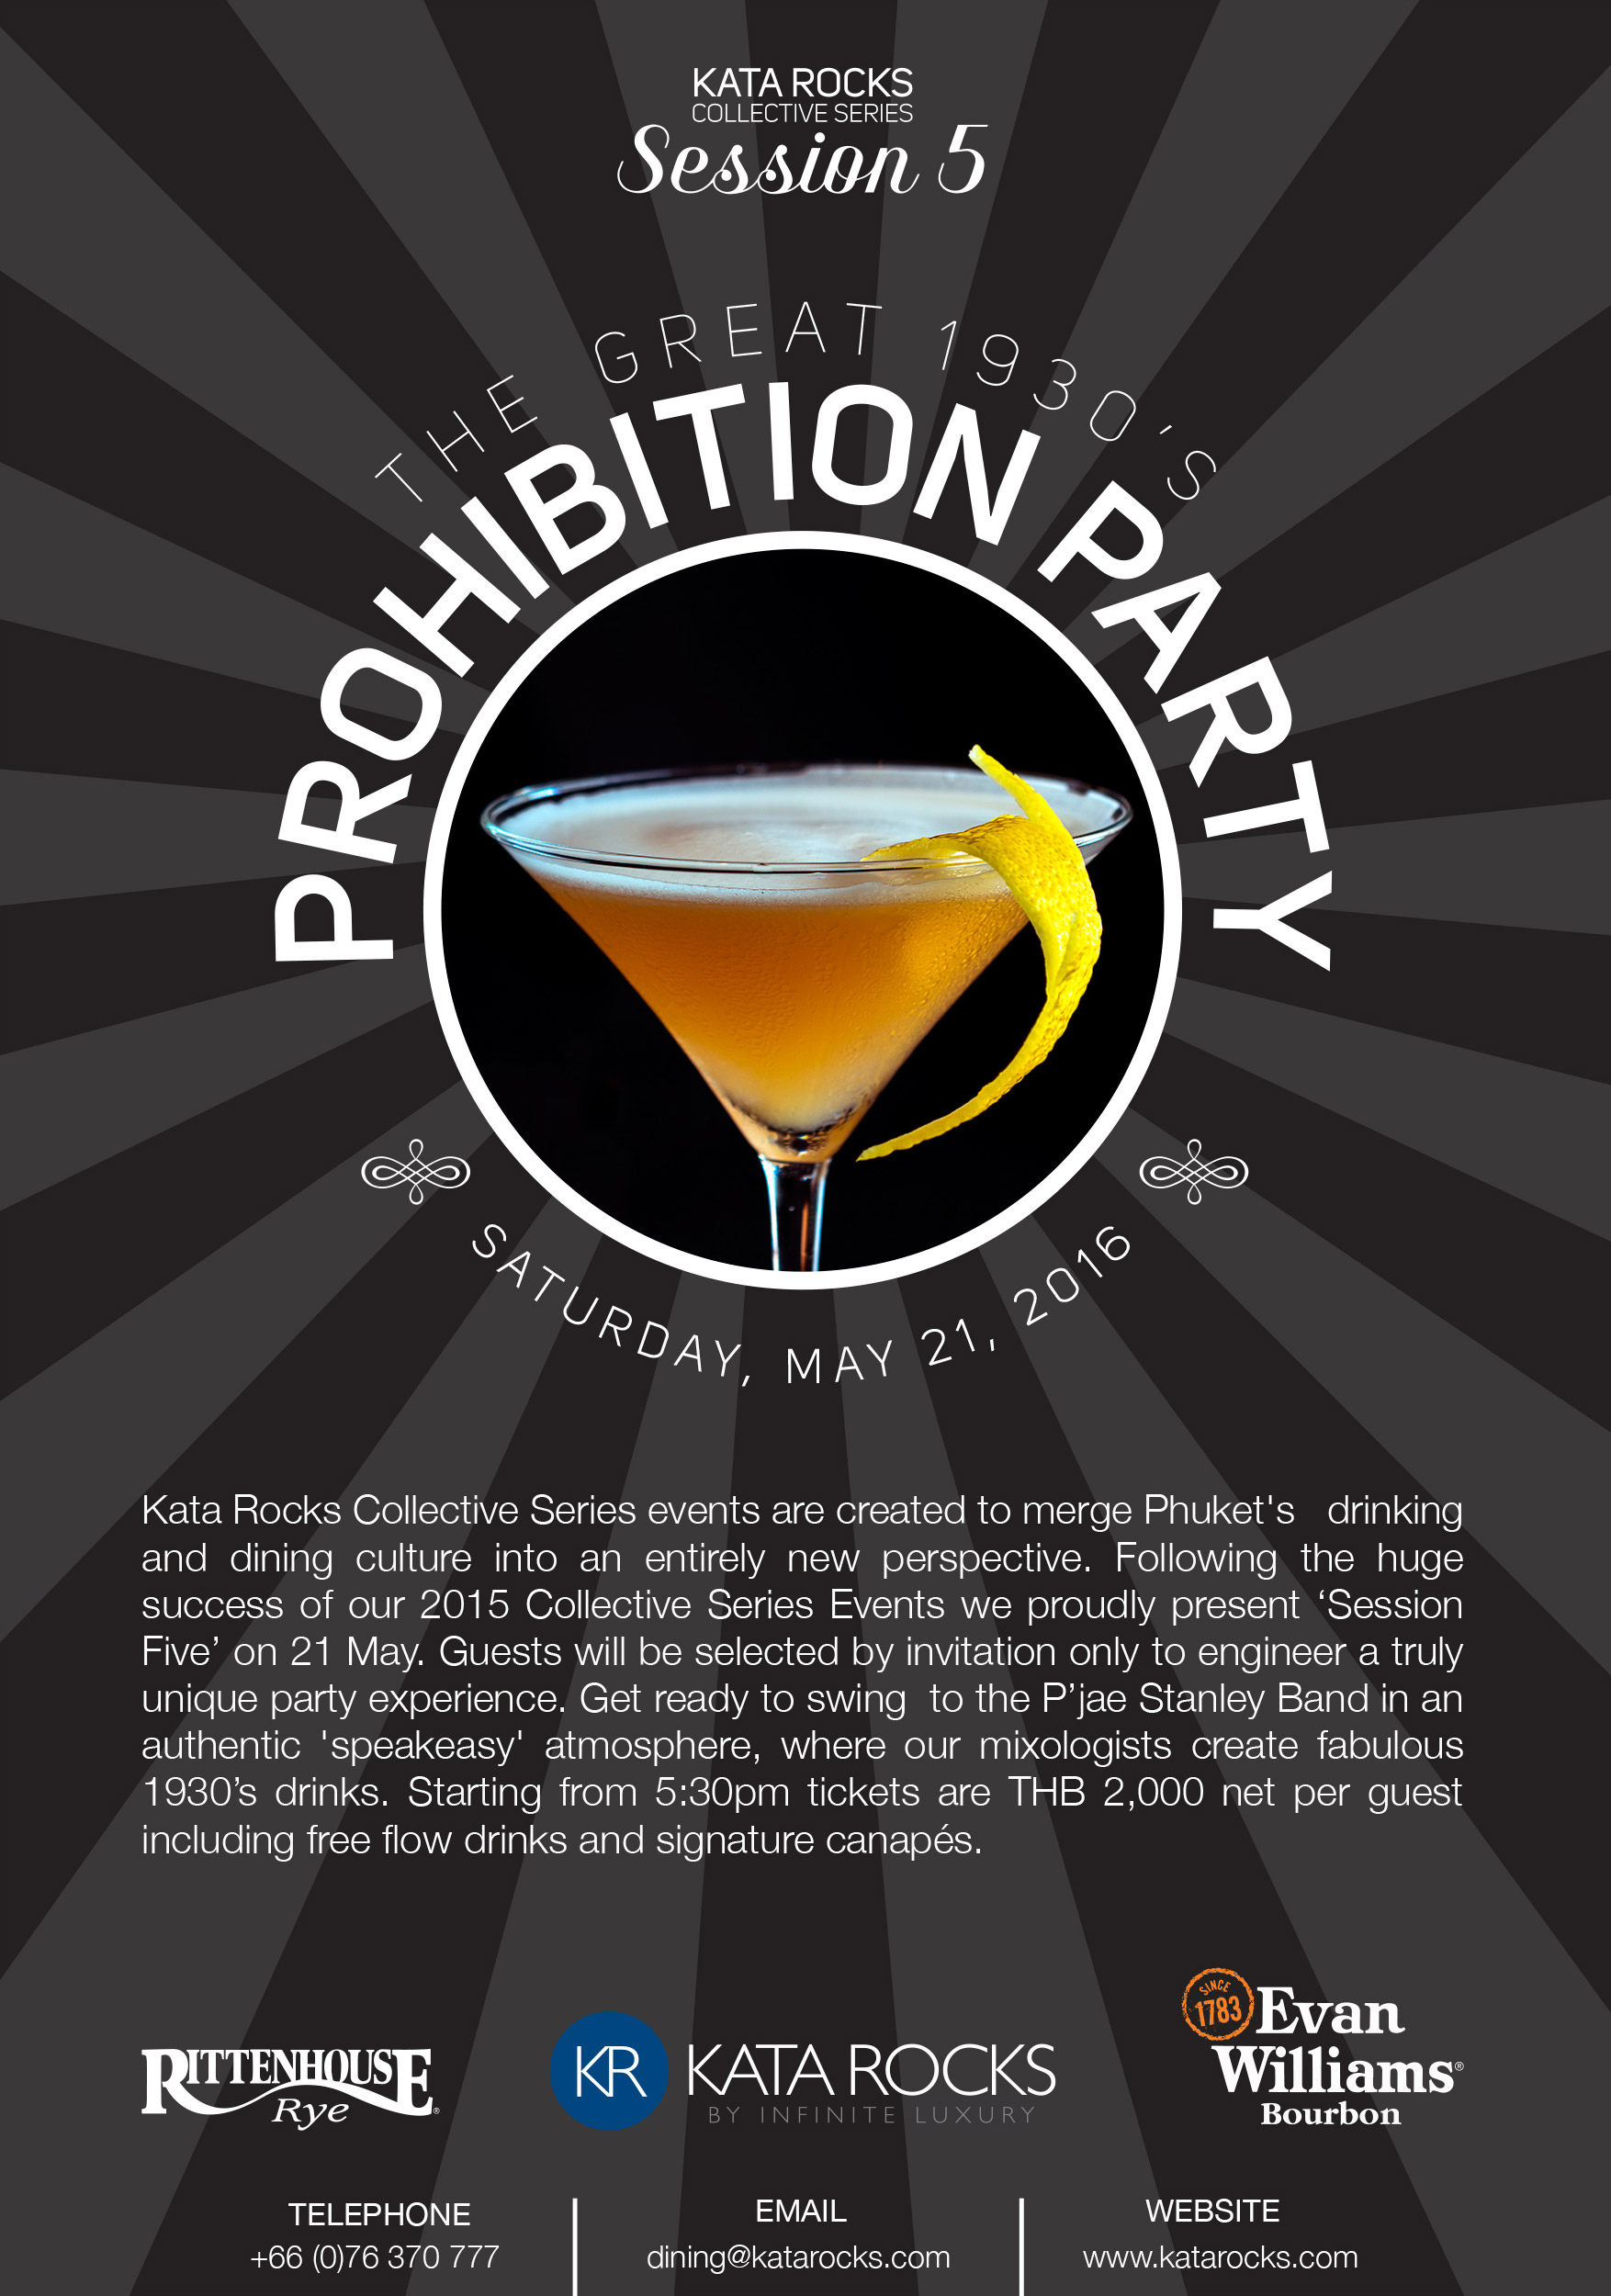 Kata Rocks Collective Series events - Prohibition Party